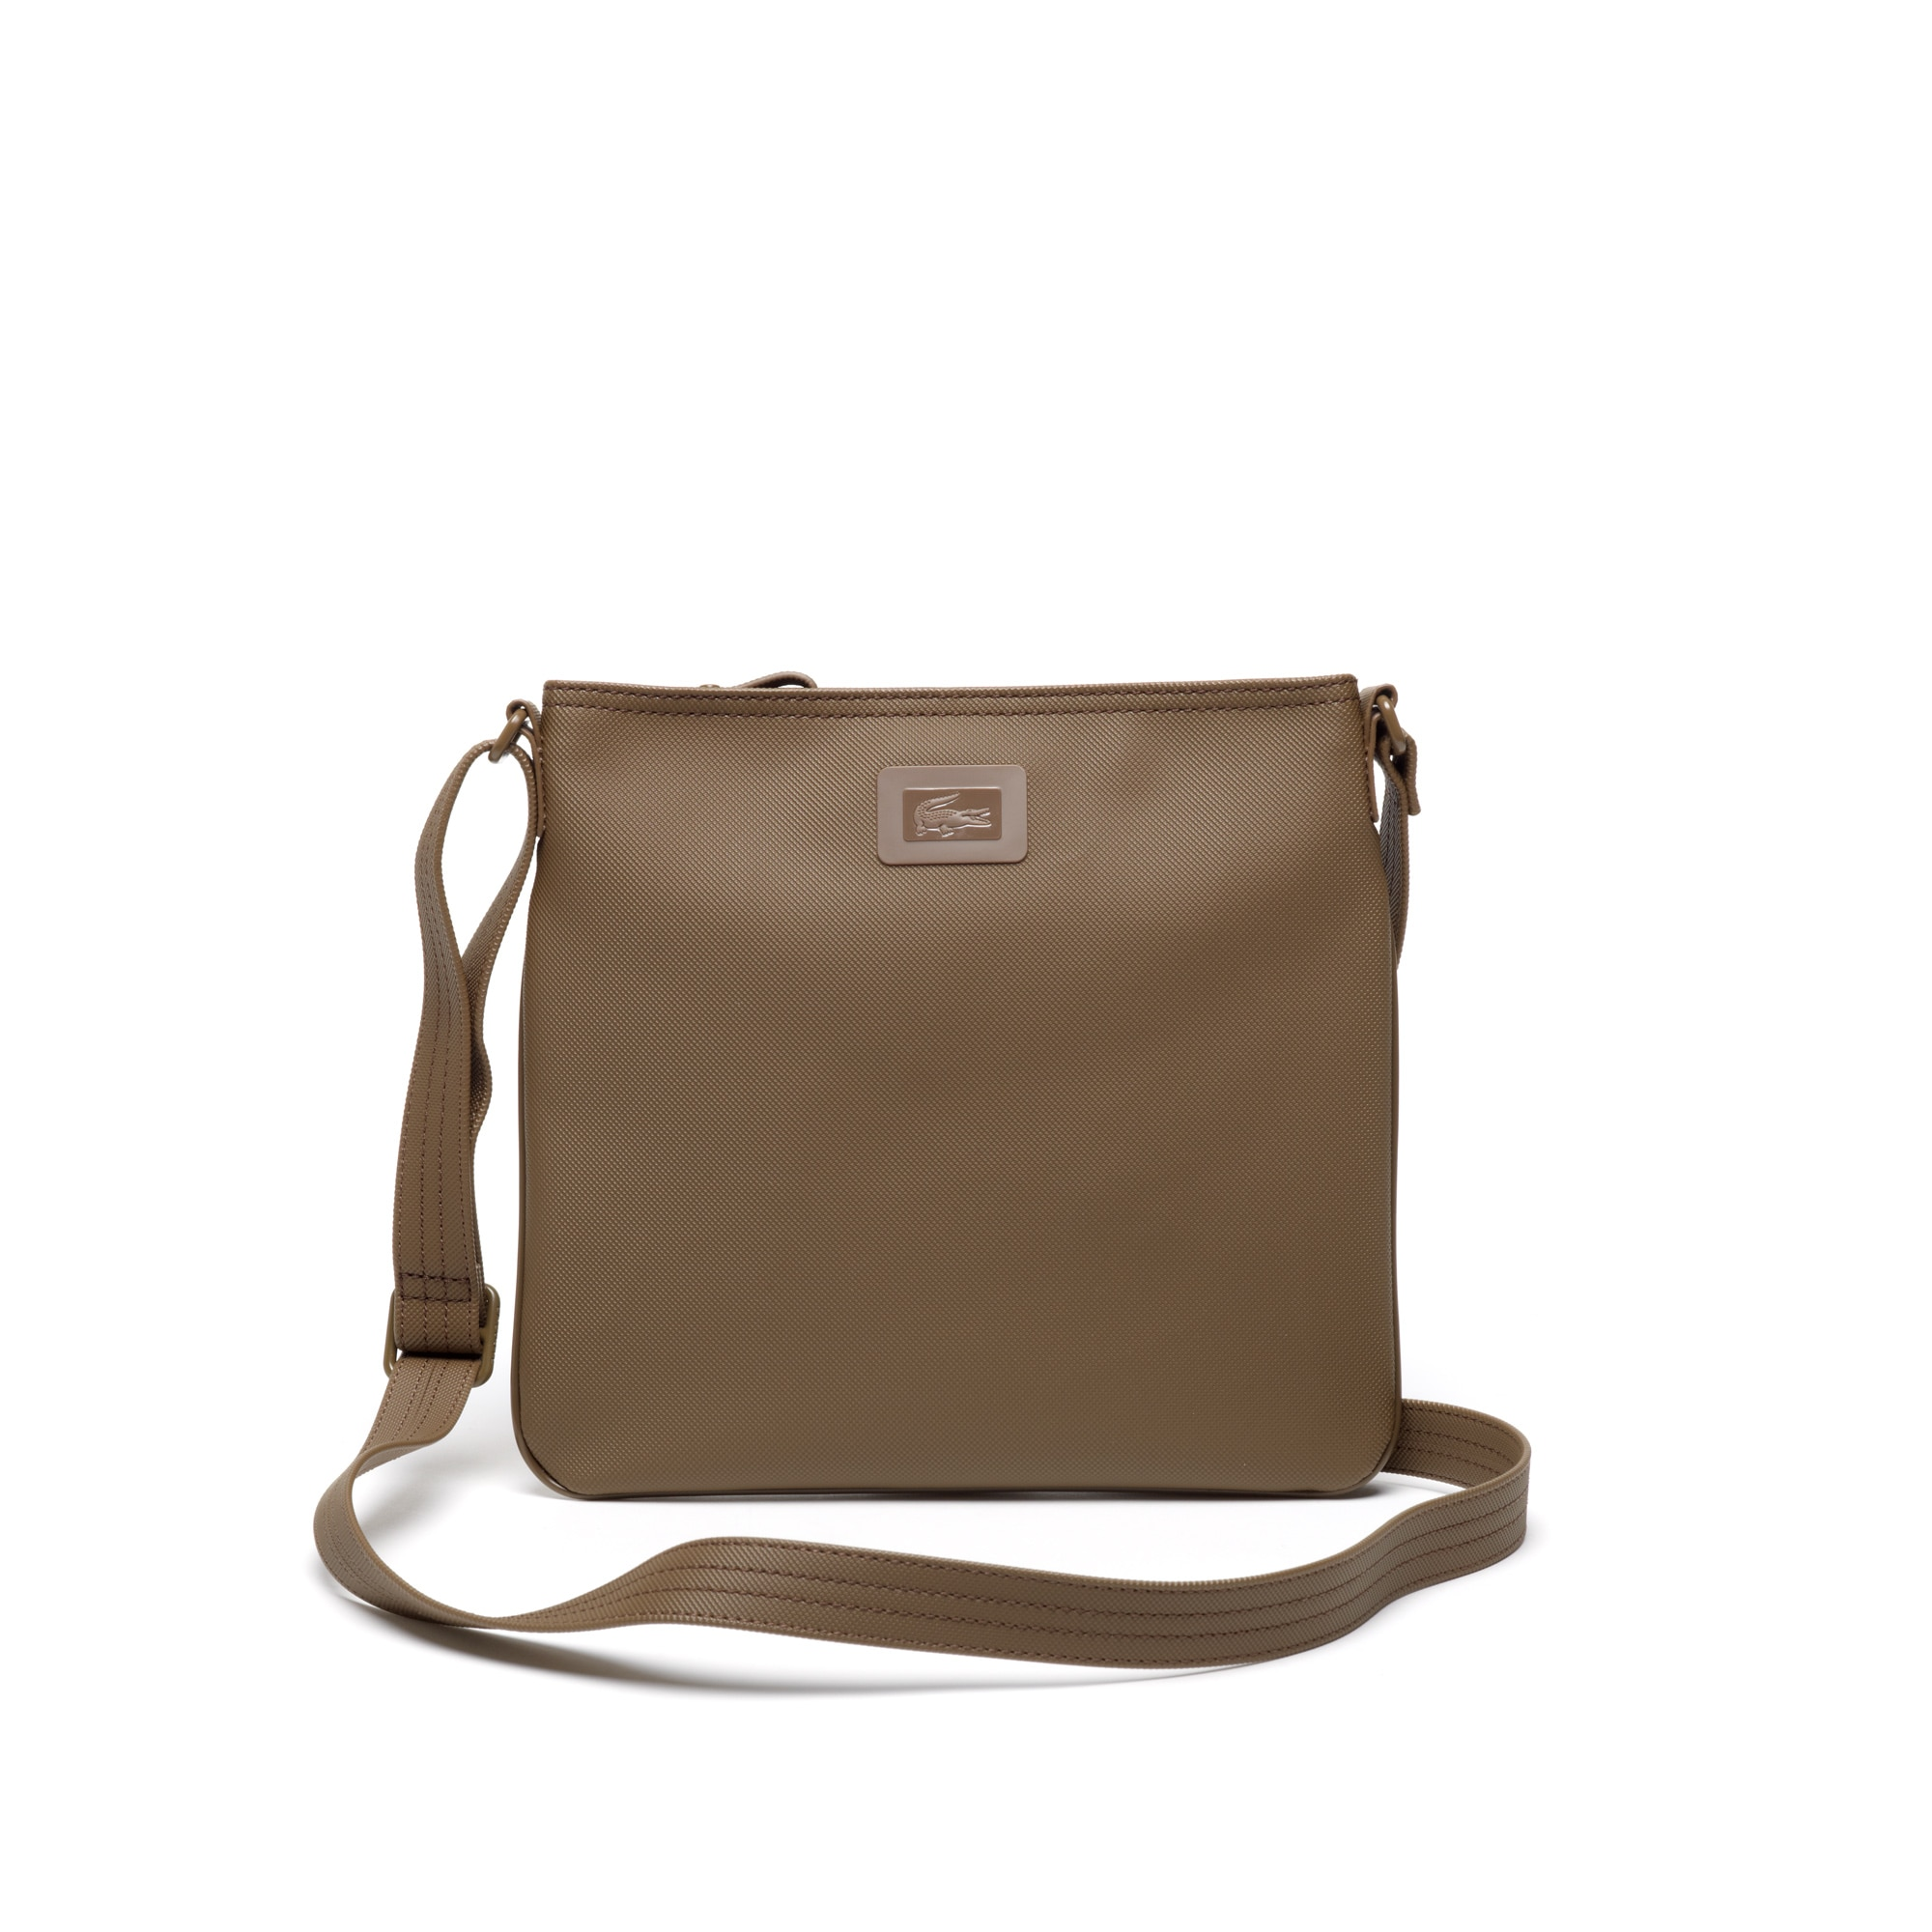 453e2ae8ea Sac crossover WOMEN'S CLASSIC - plat. Couleur : COFFEE LIQUEUR